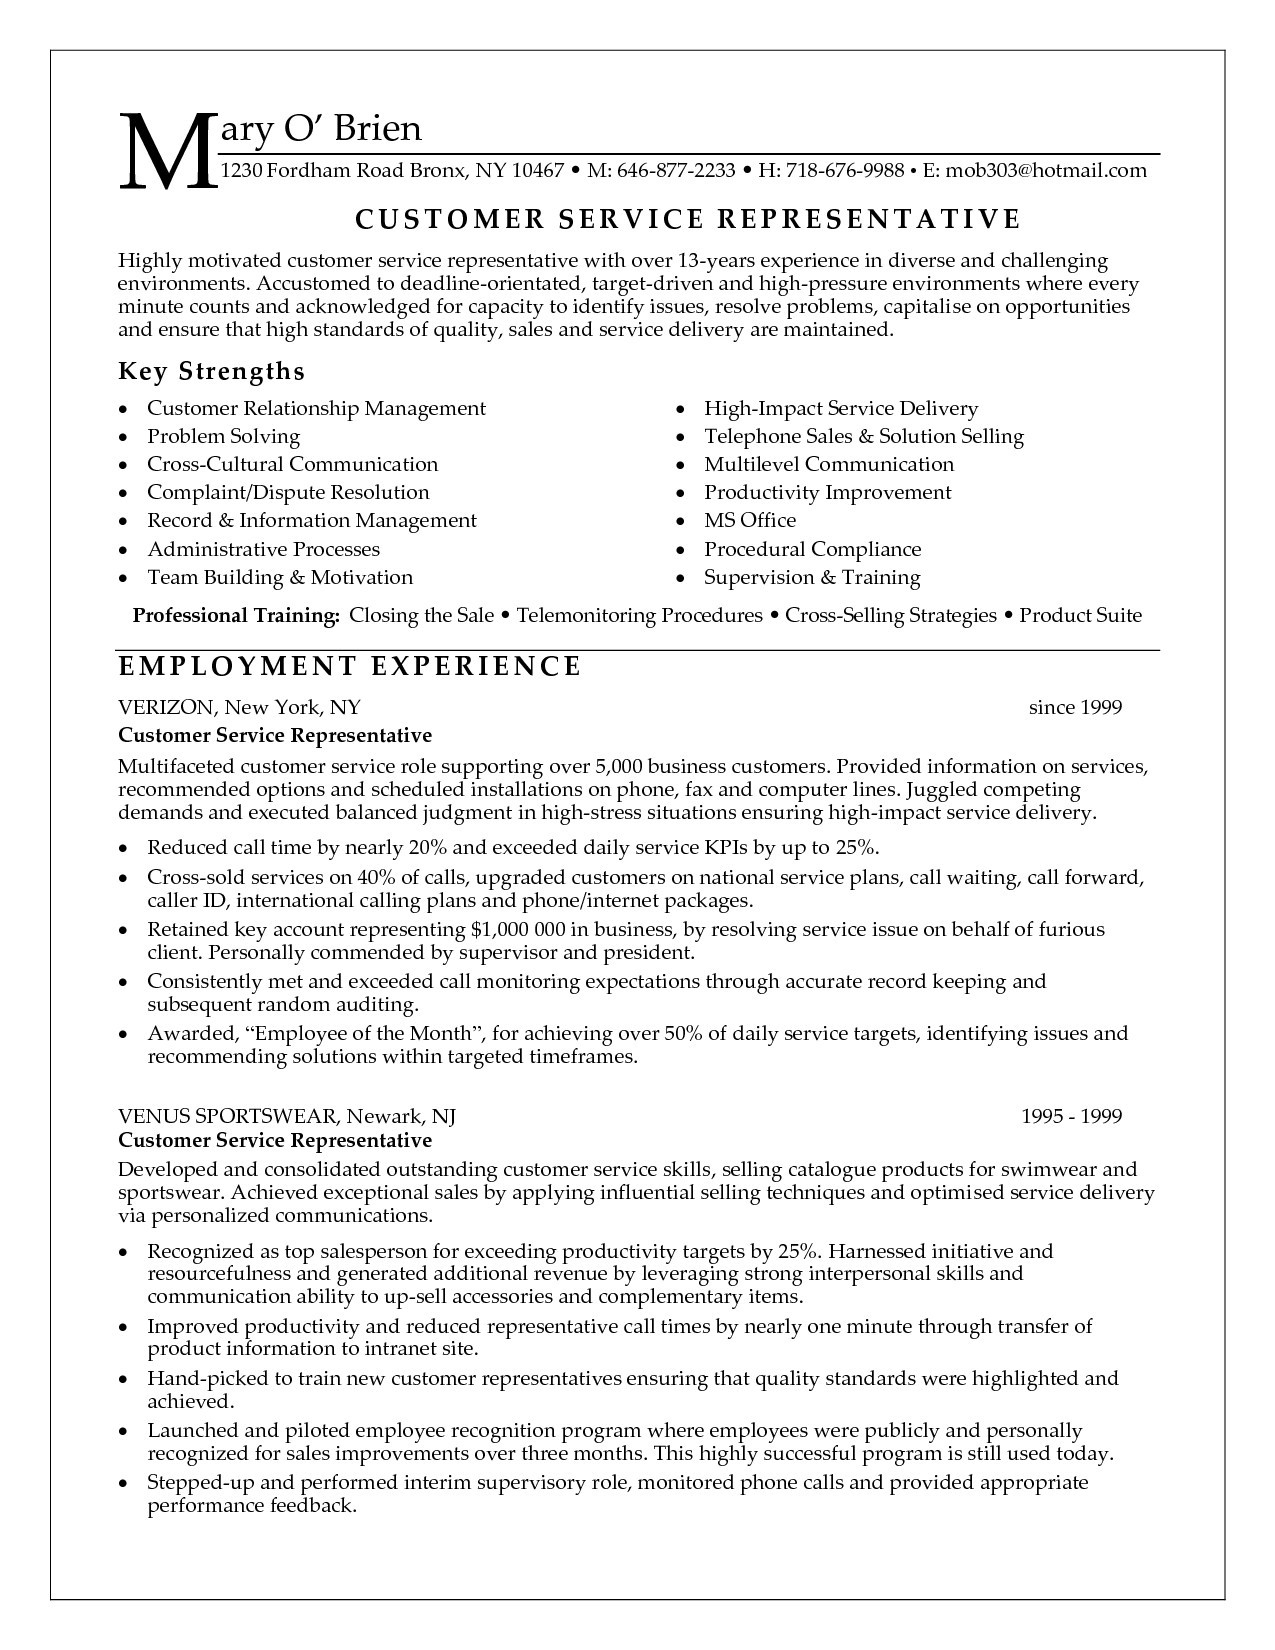 Example Of College Resume - Resume Skills Examples Customer Service Best Best Sample College